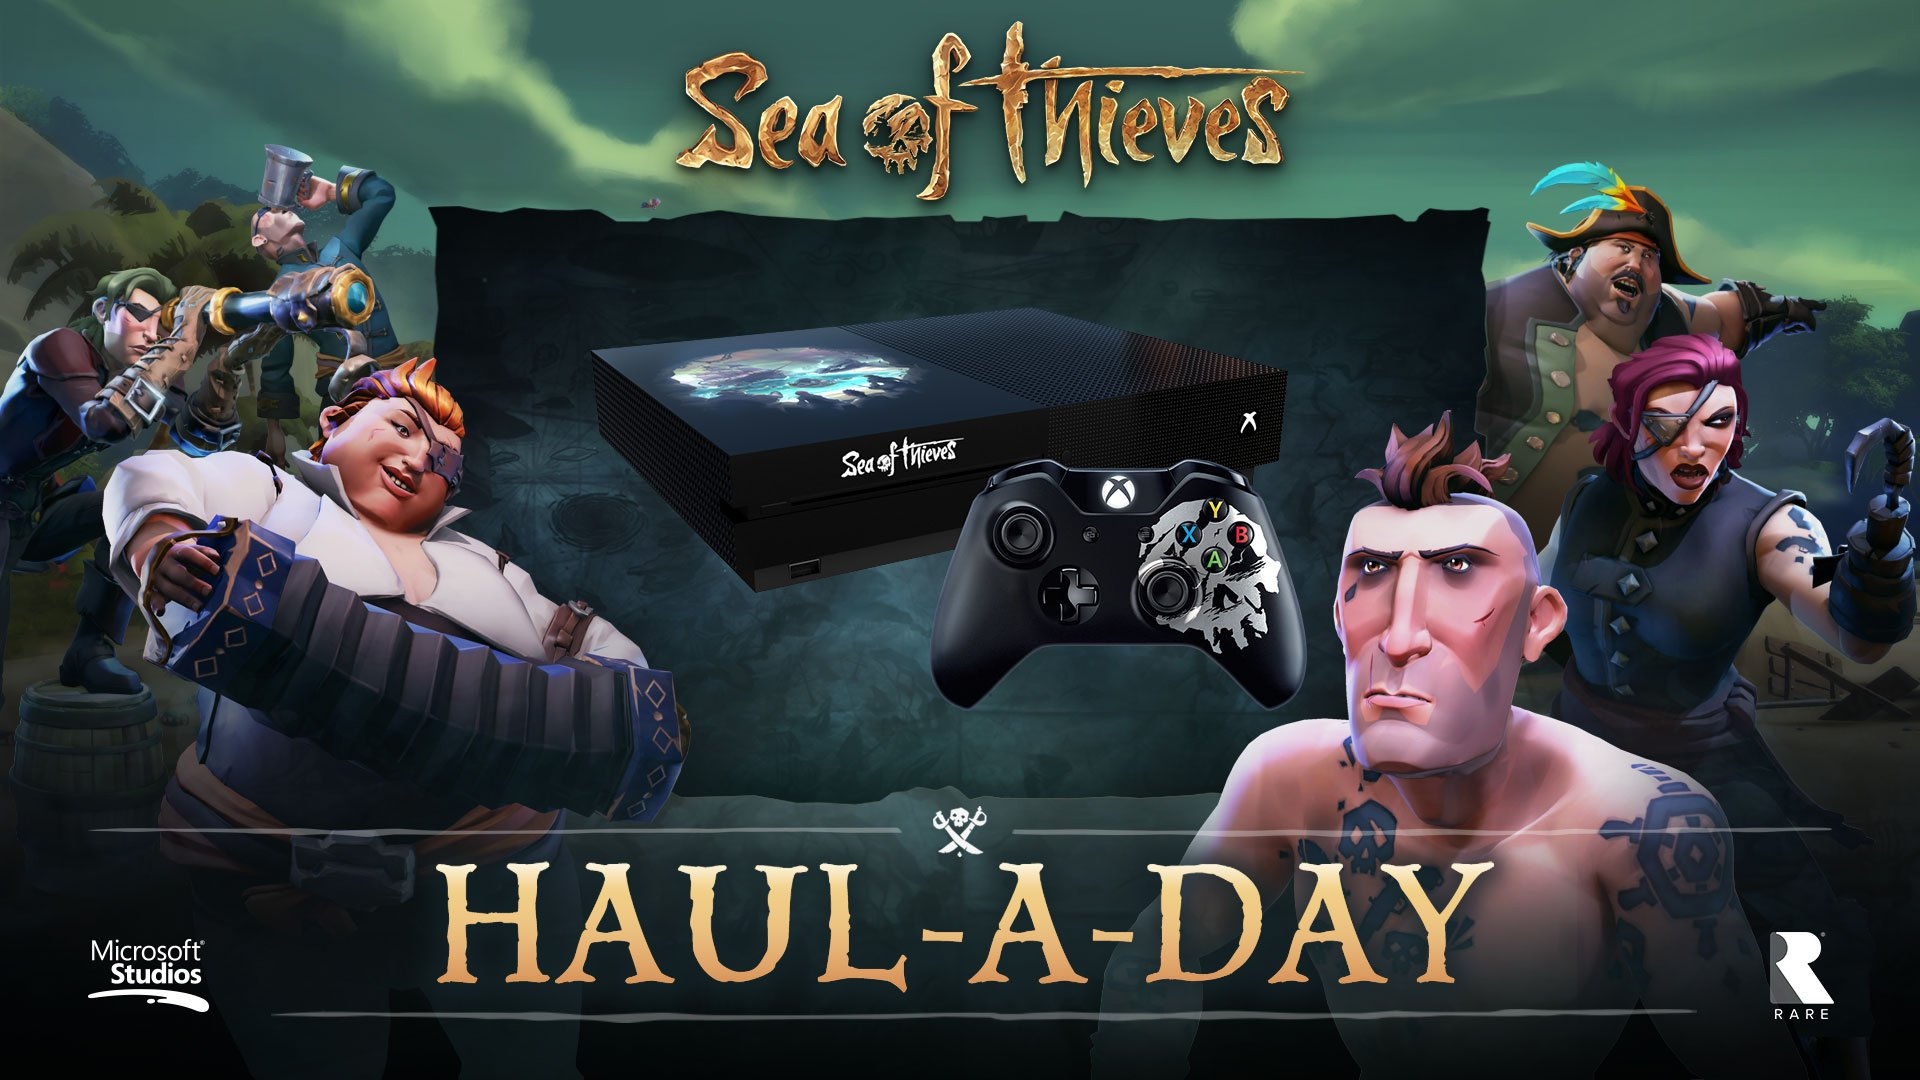 Sea Of Thieves On Twitter Win A Custom SeaOfThieves